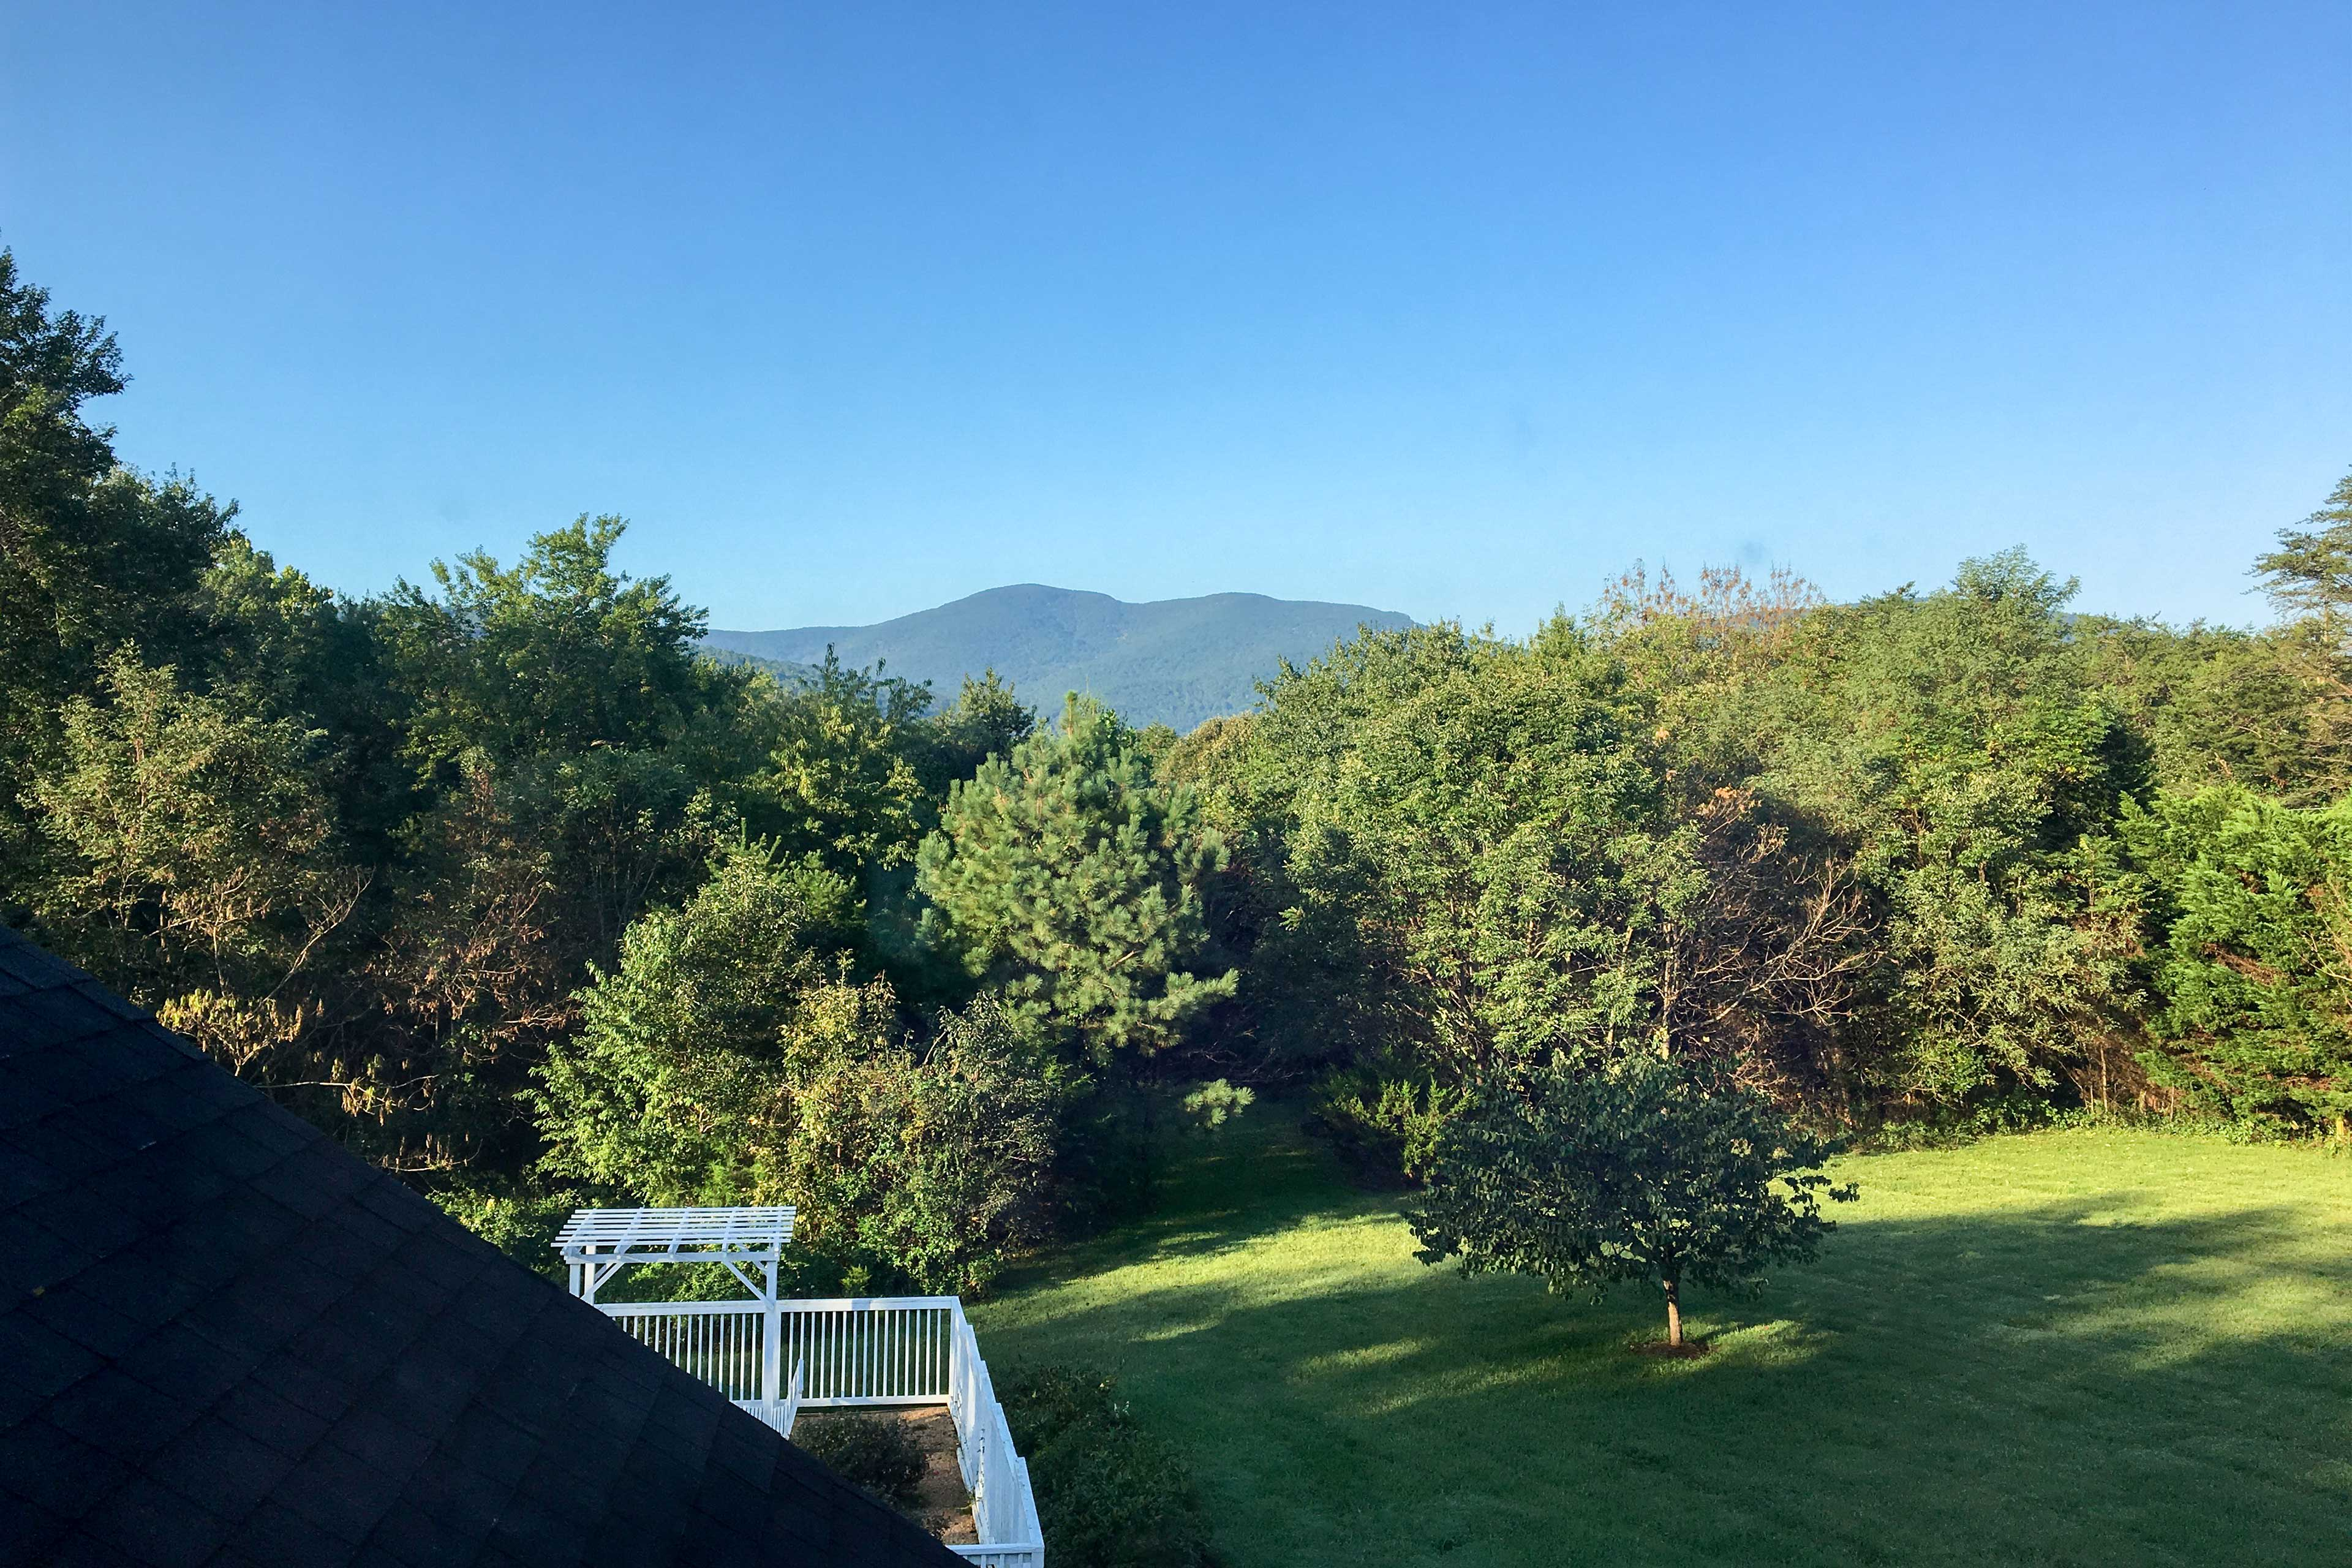 Escape to the scenic Blue Ridge Mountains and stay at this spacious Afton abode.